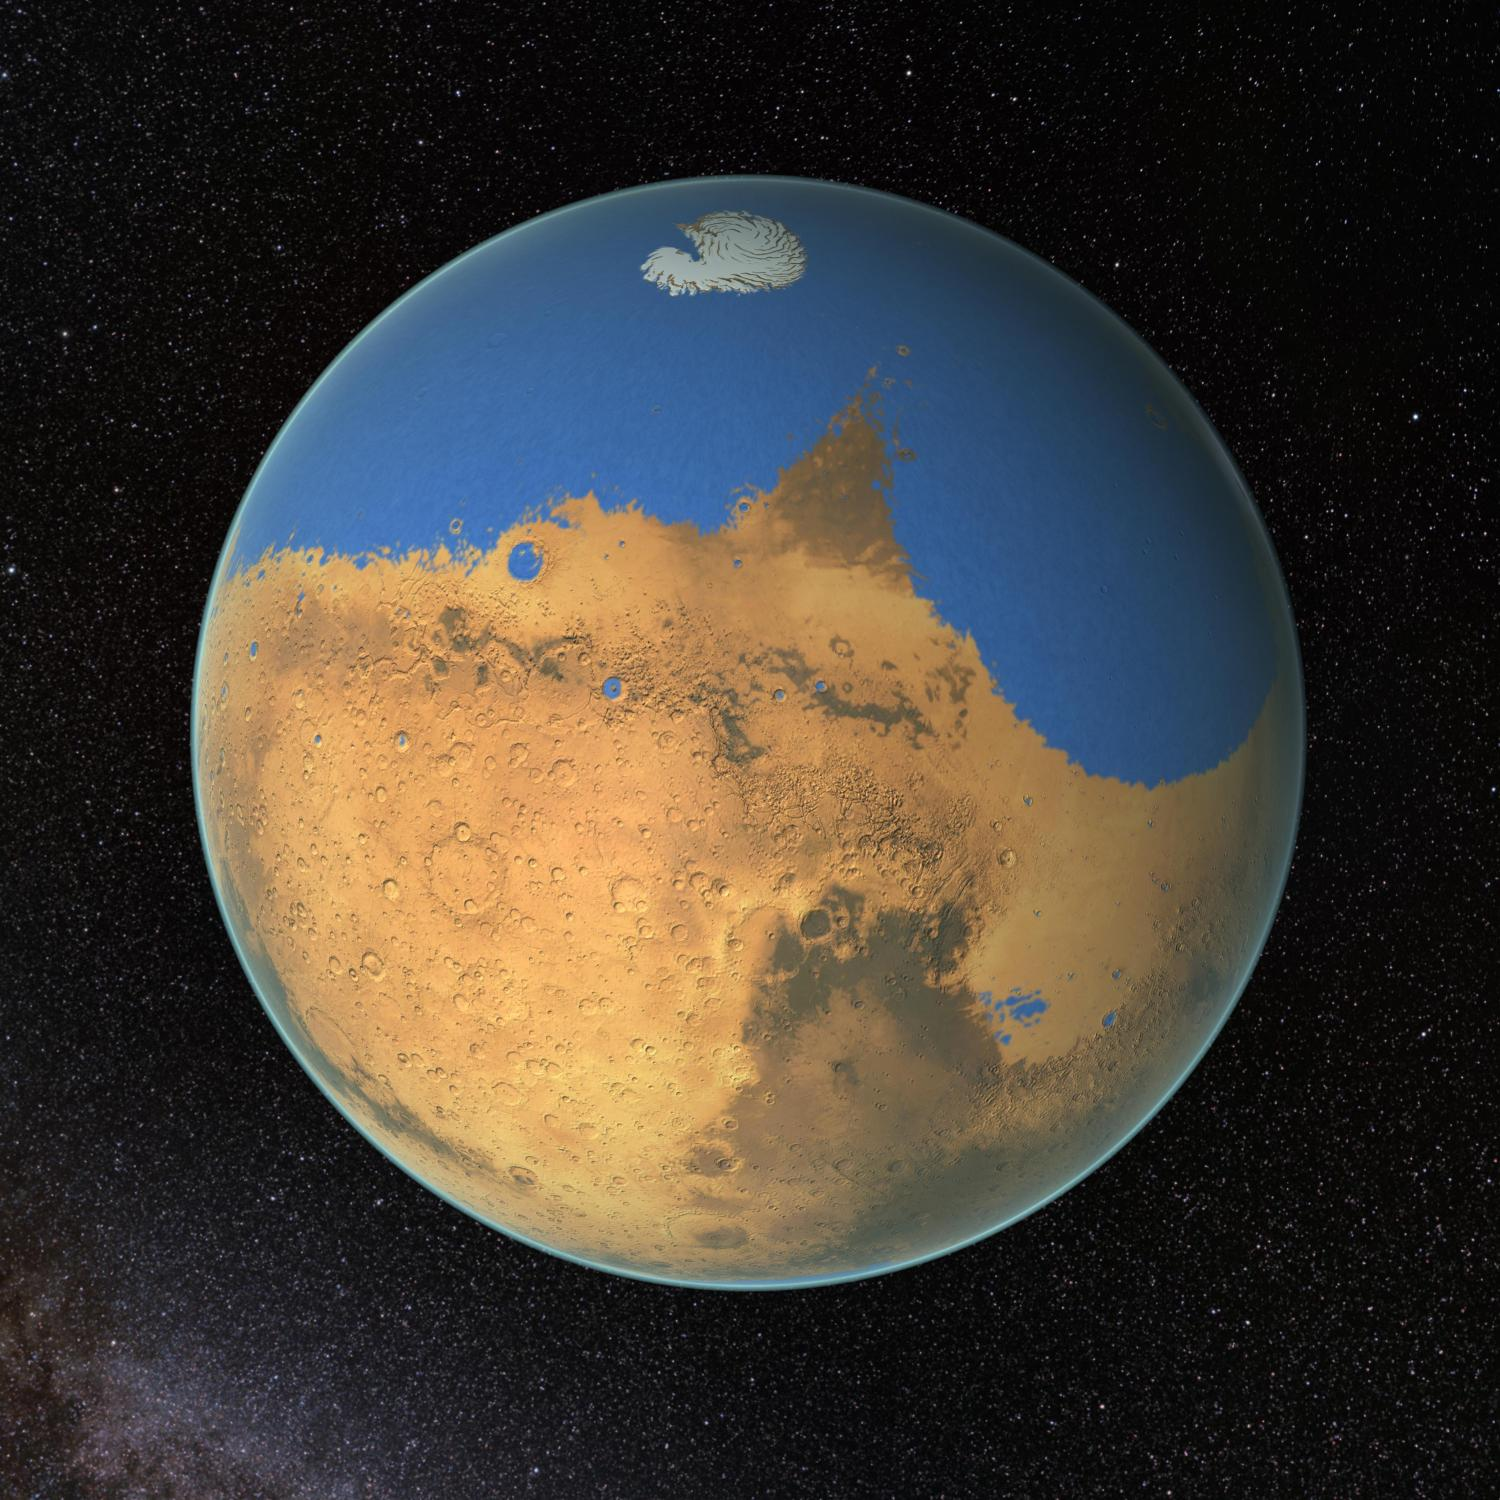 research suggests mars once had more water than earth 39 s arctic ocean. Black Bedroom Furniture Sets. Home Design Ideas